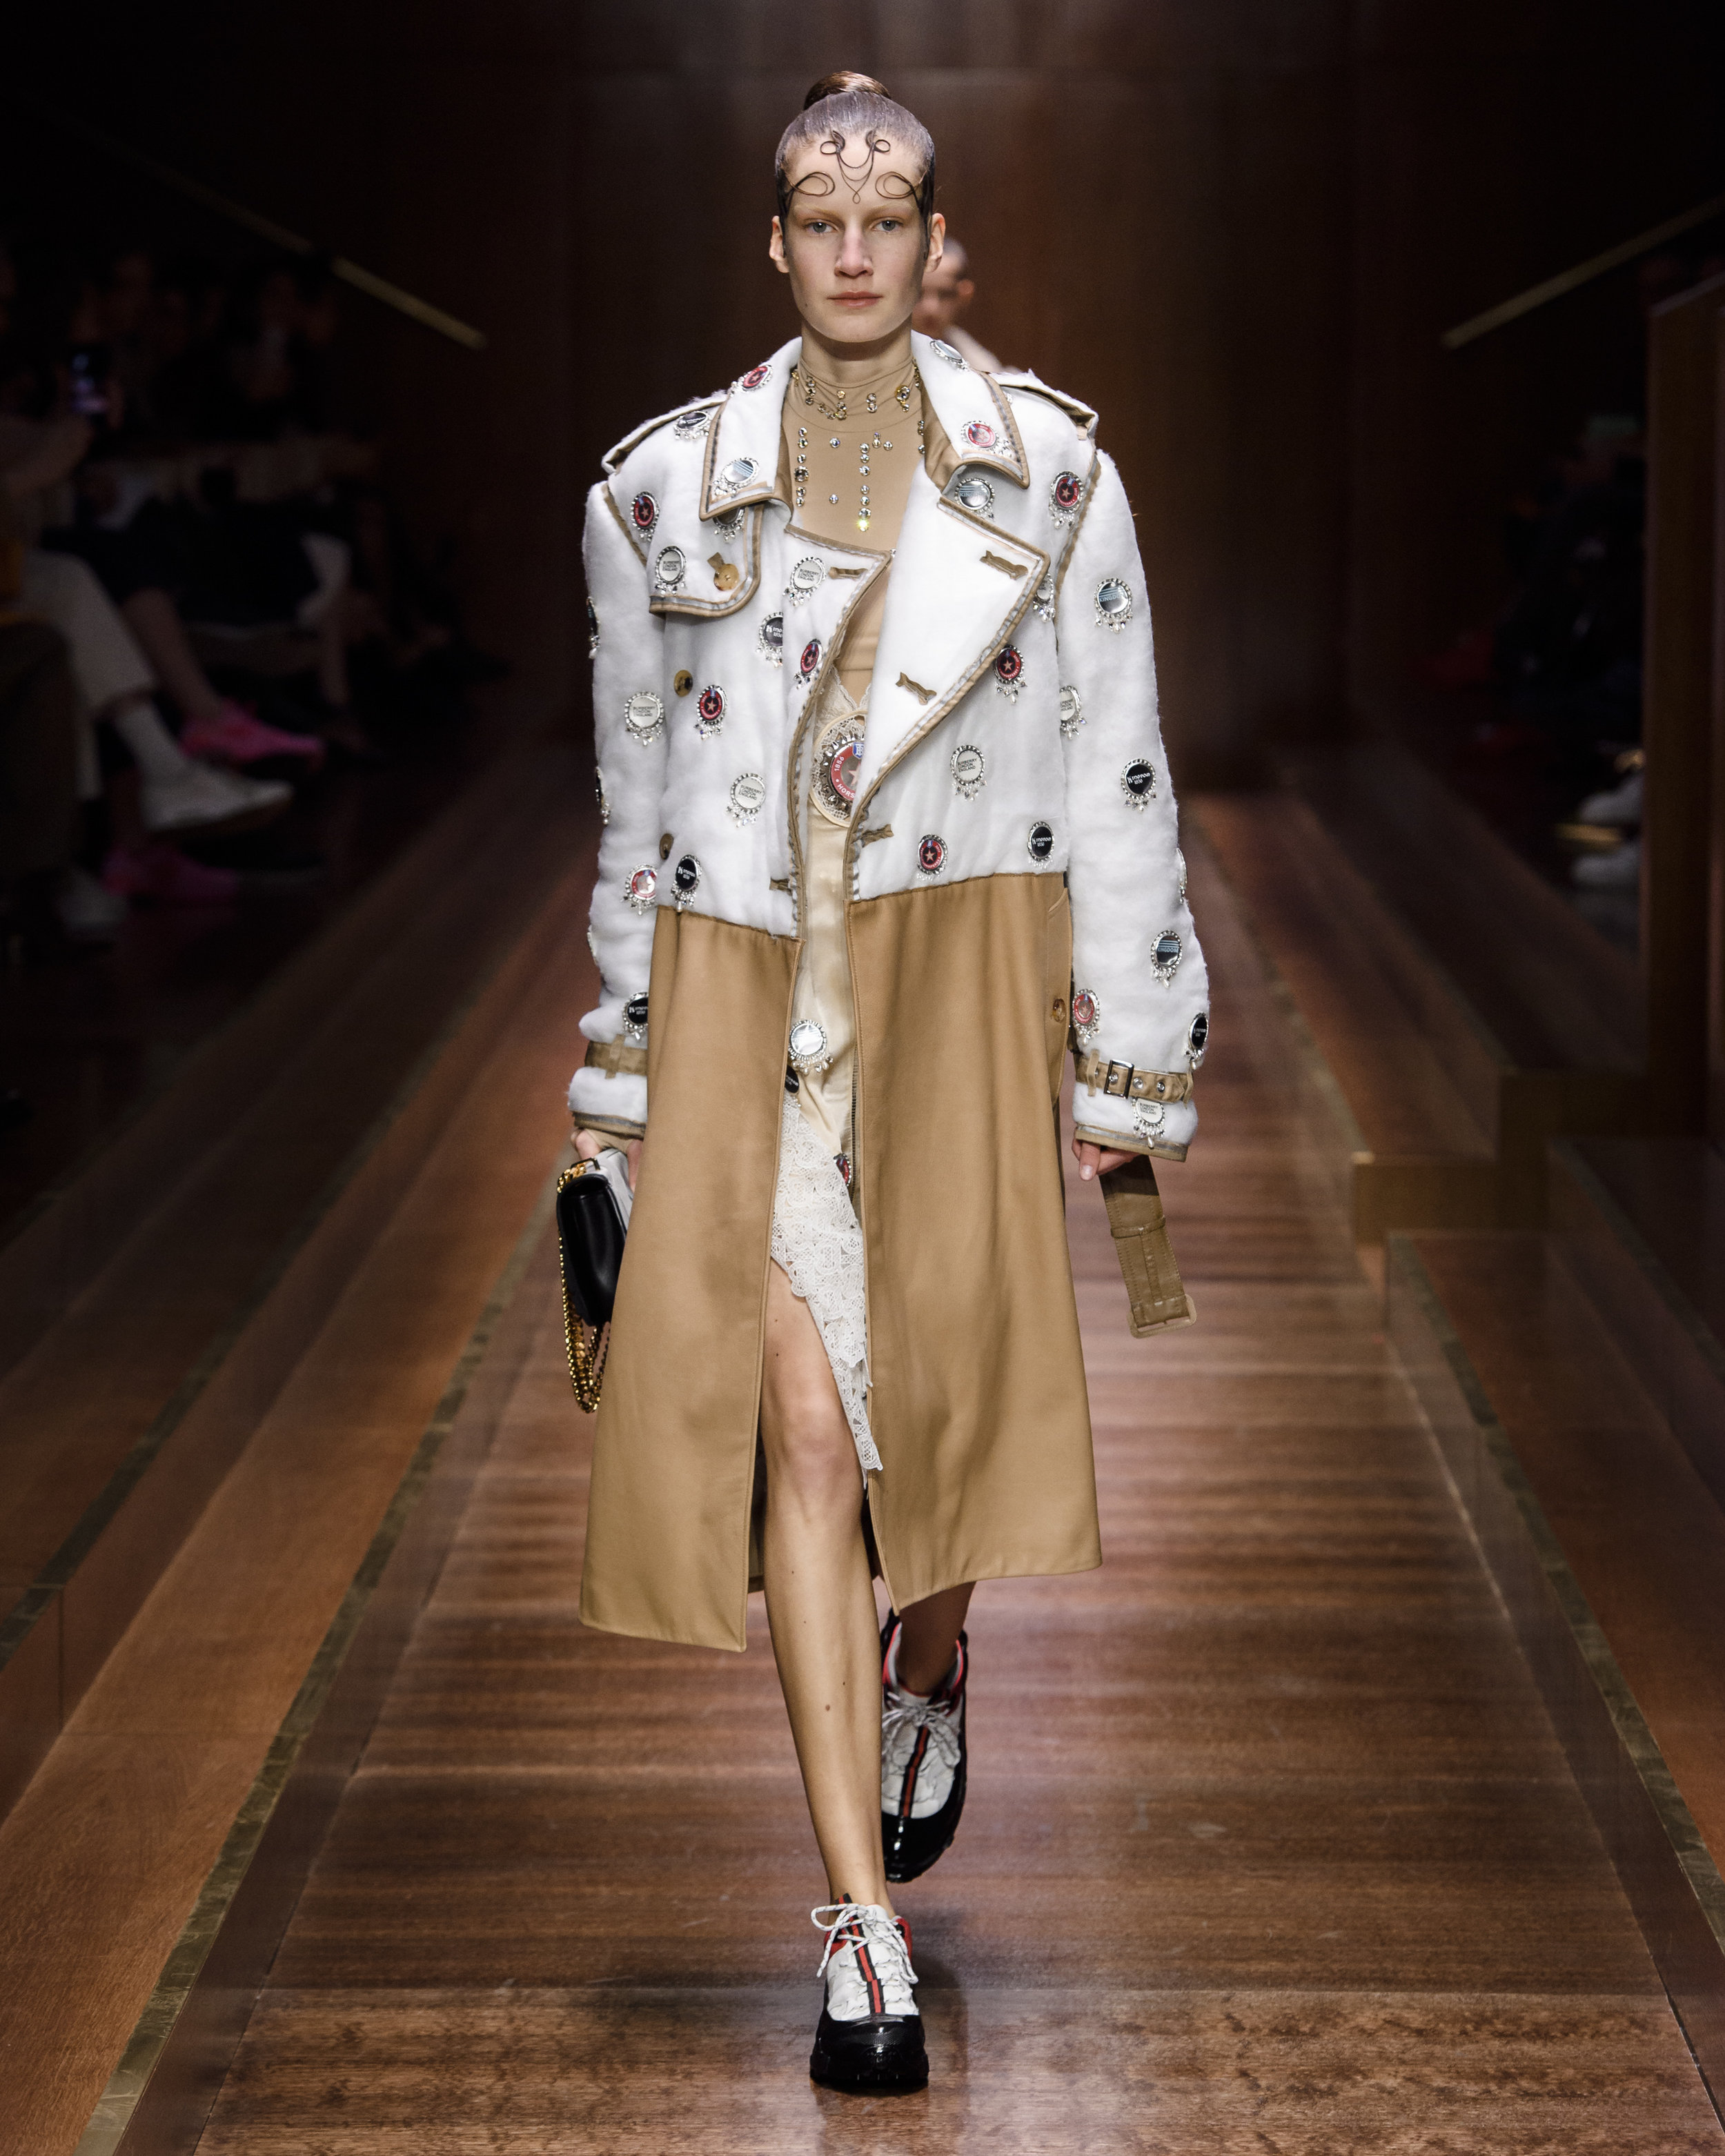 Burberry Autumn_Winter 2019 Collection - Look 37.jpg